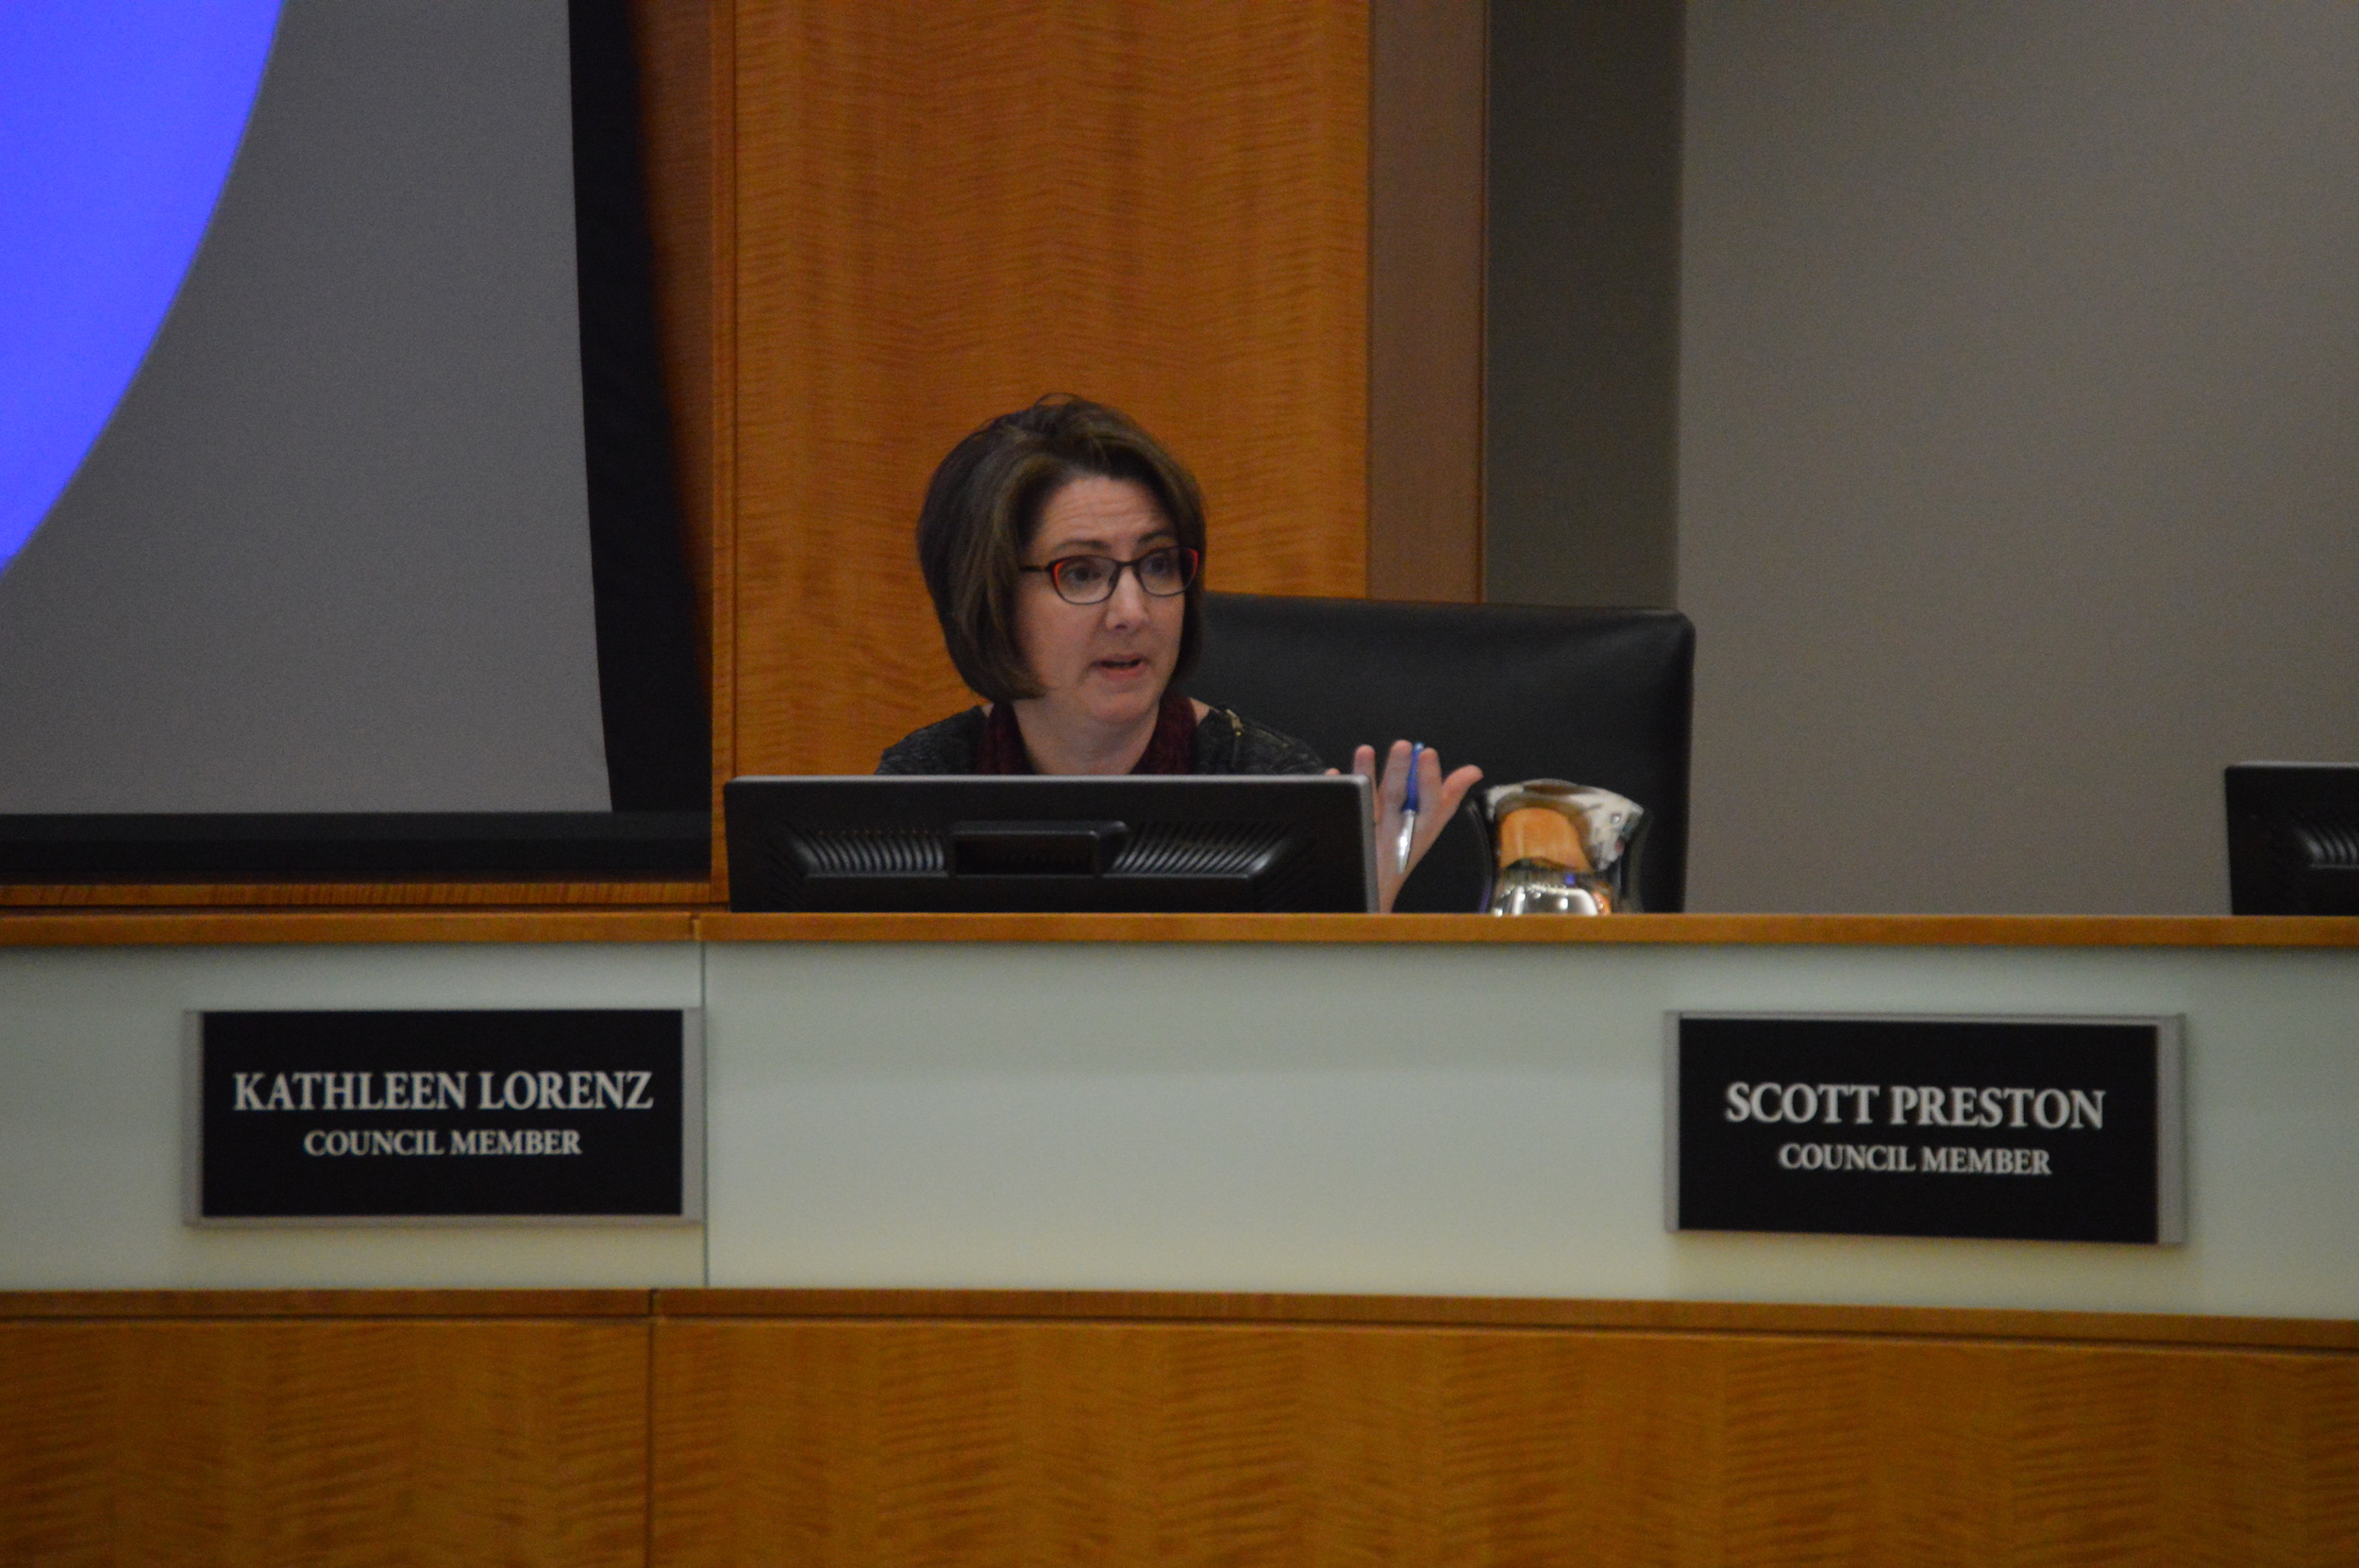 Normal Town Council members approved one of the leanest budgets in recent memory Monday night. Council member Kathleen Lorenz opposed a water rate hike and billing structure change at a time when she says the Town should be looking for money-saving efficiencies.